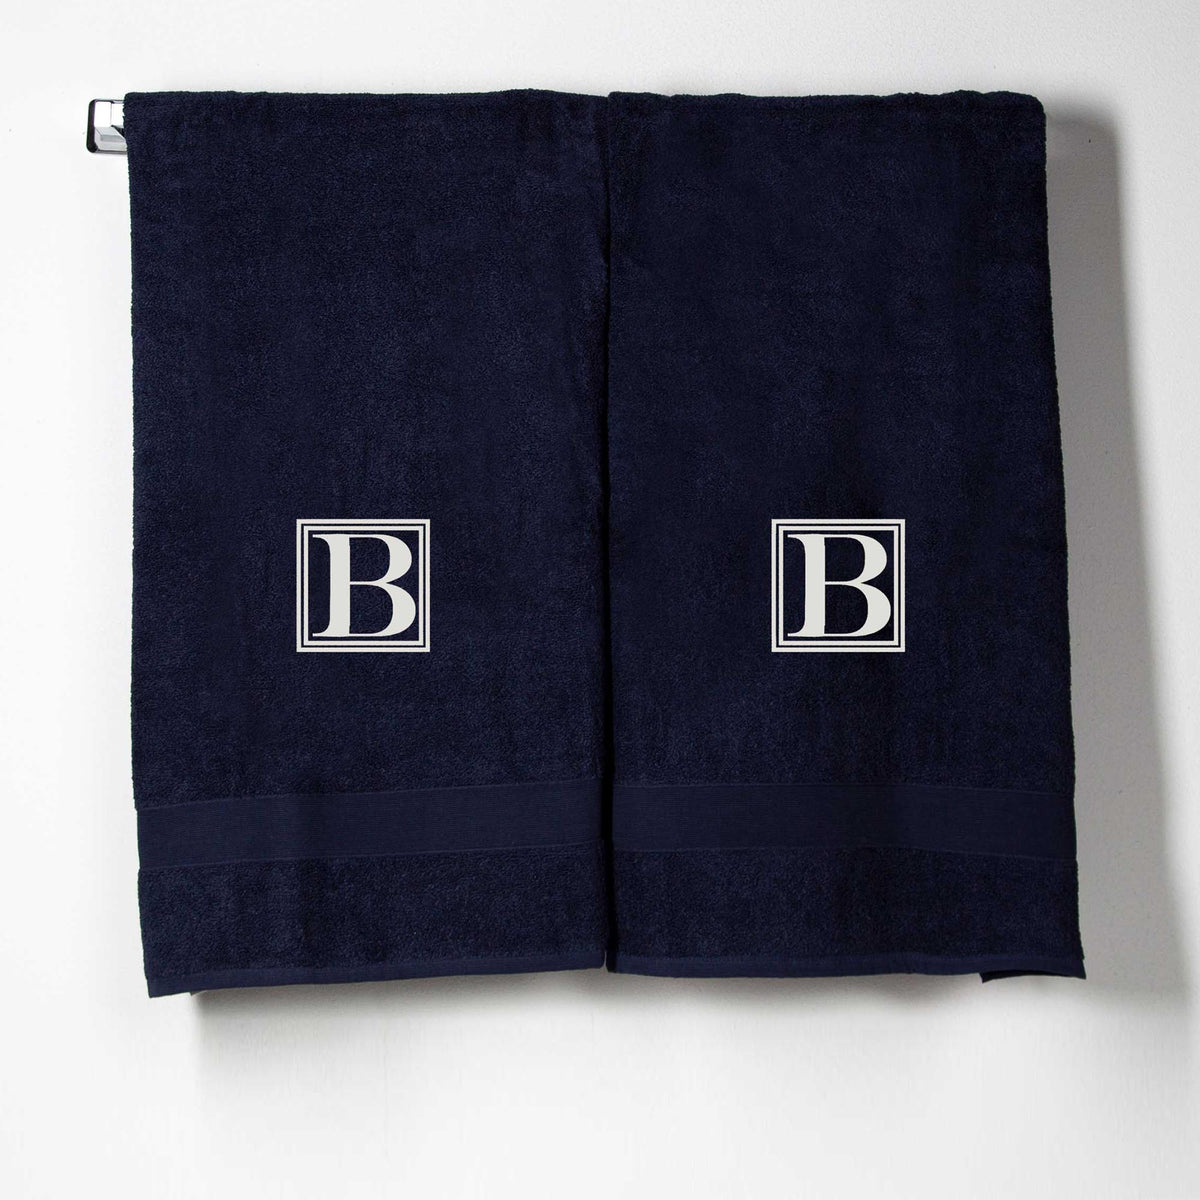 Personalized Bath Towels - Set of 2